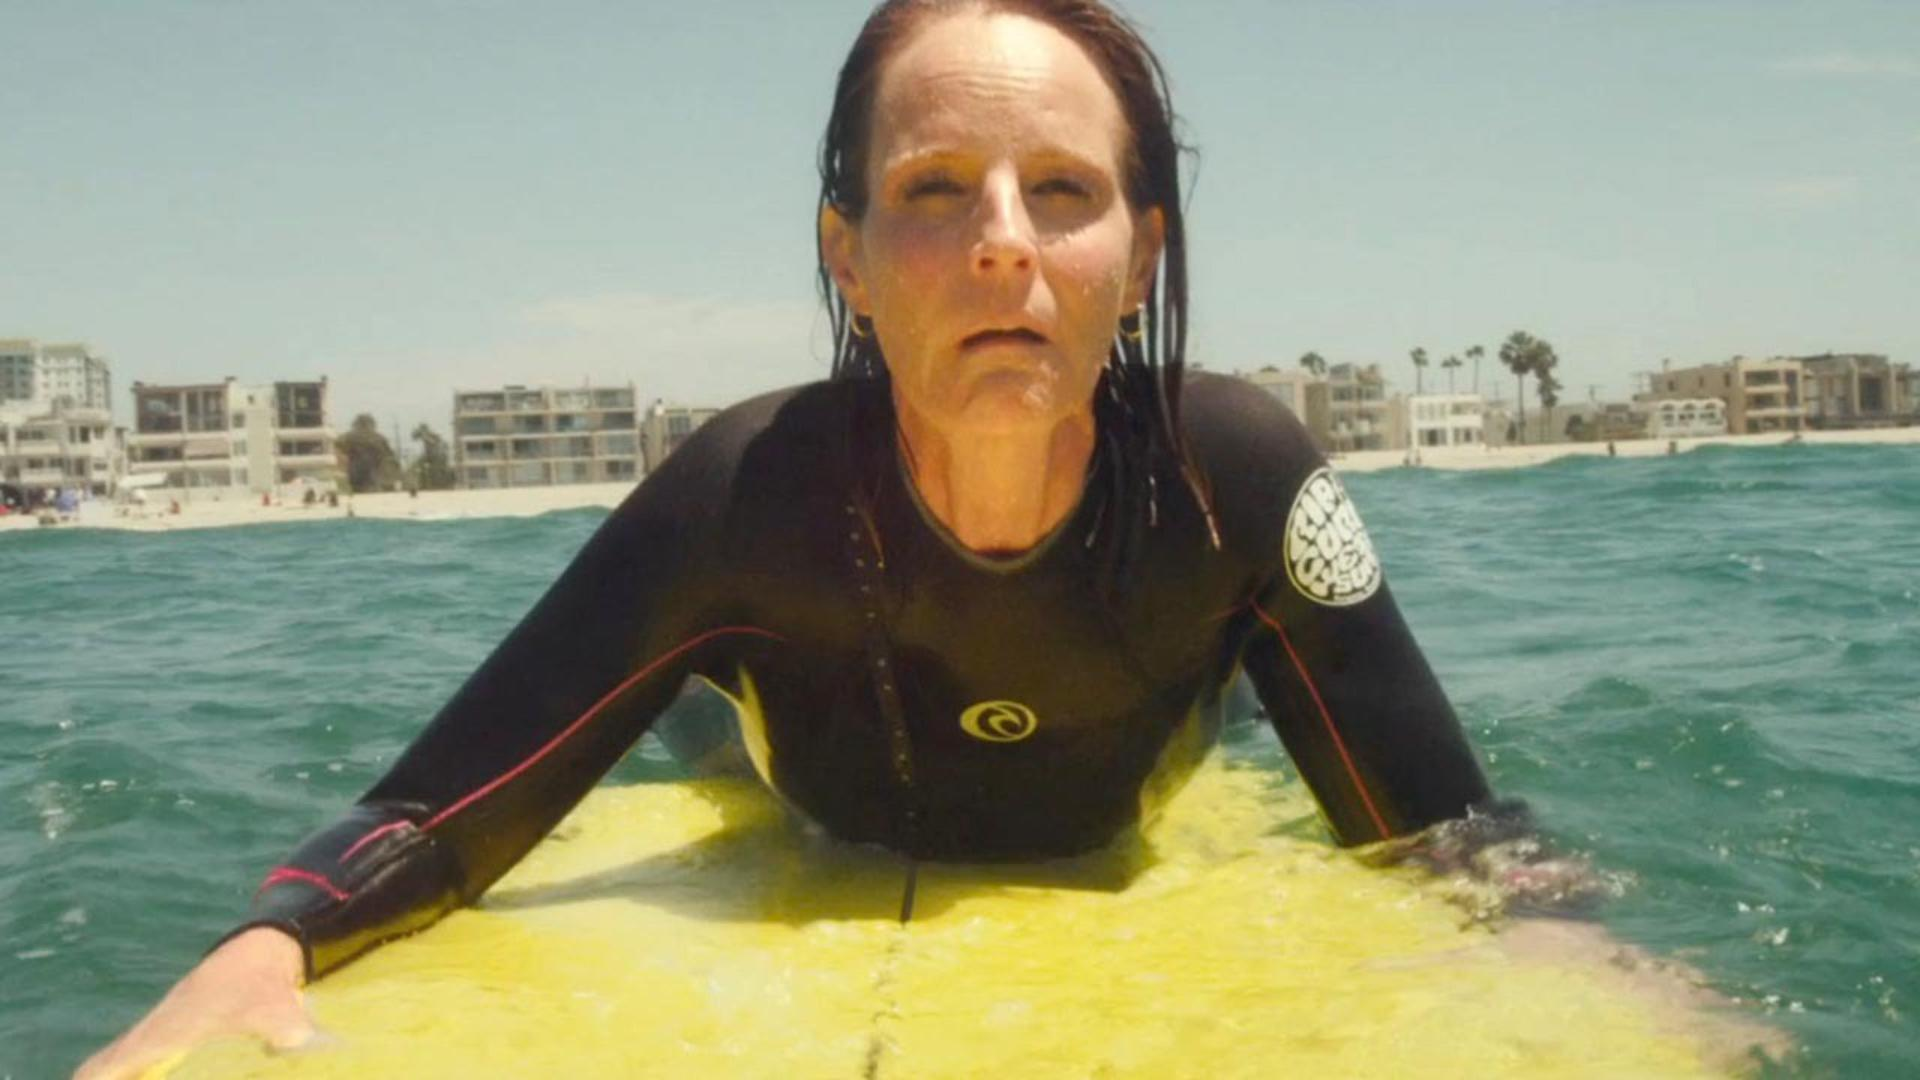 'Ride' Review: Helen Hunt Catches The Indie Wave & Stands Tall